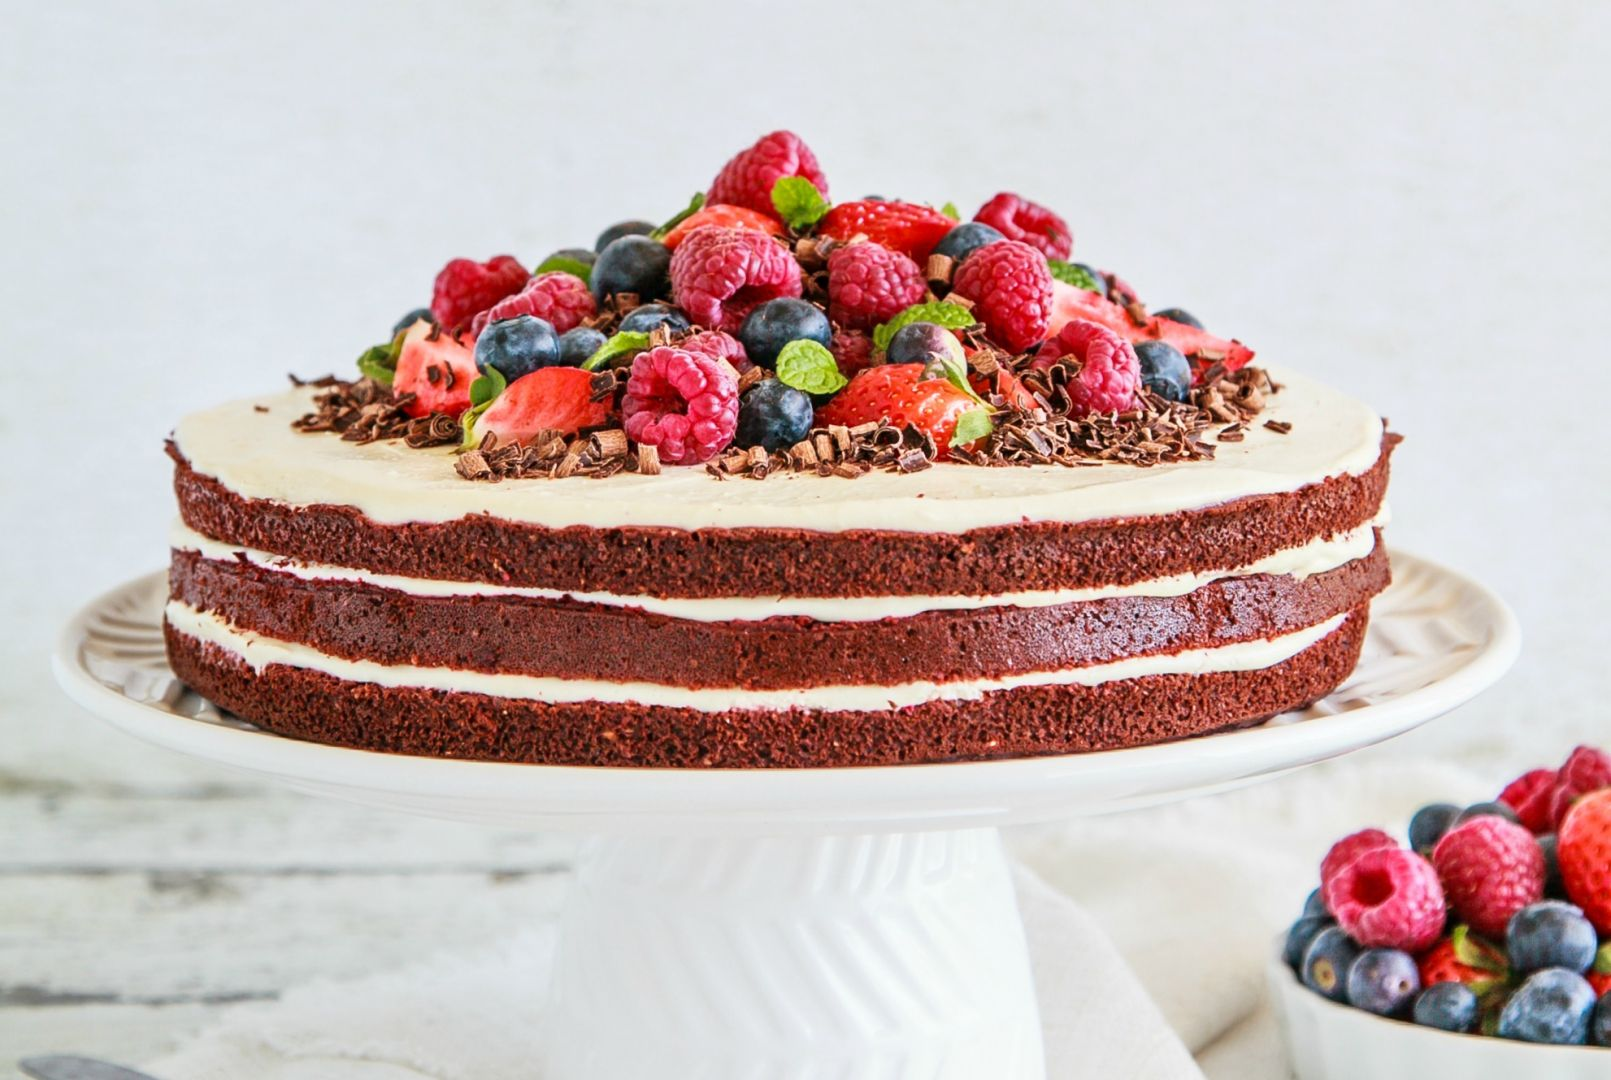 Our Top Ten Healthy Birthday Cakes